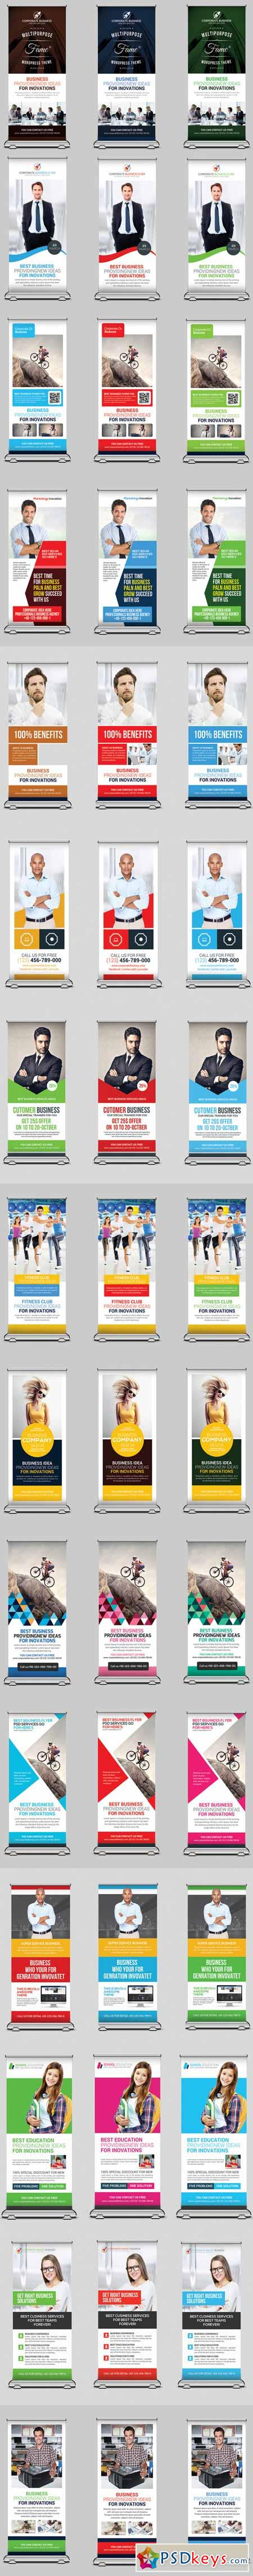 15 Business Rollup Banners Bundle 459064